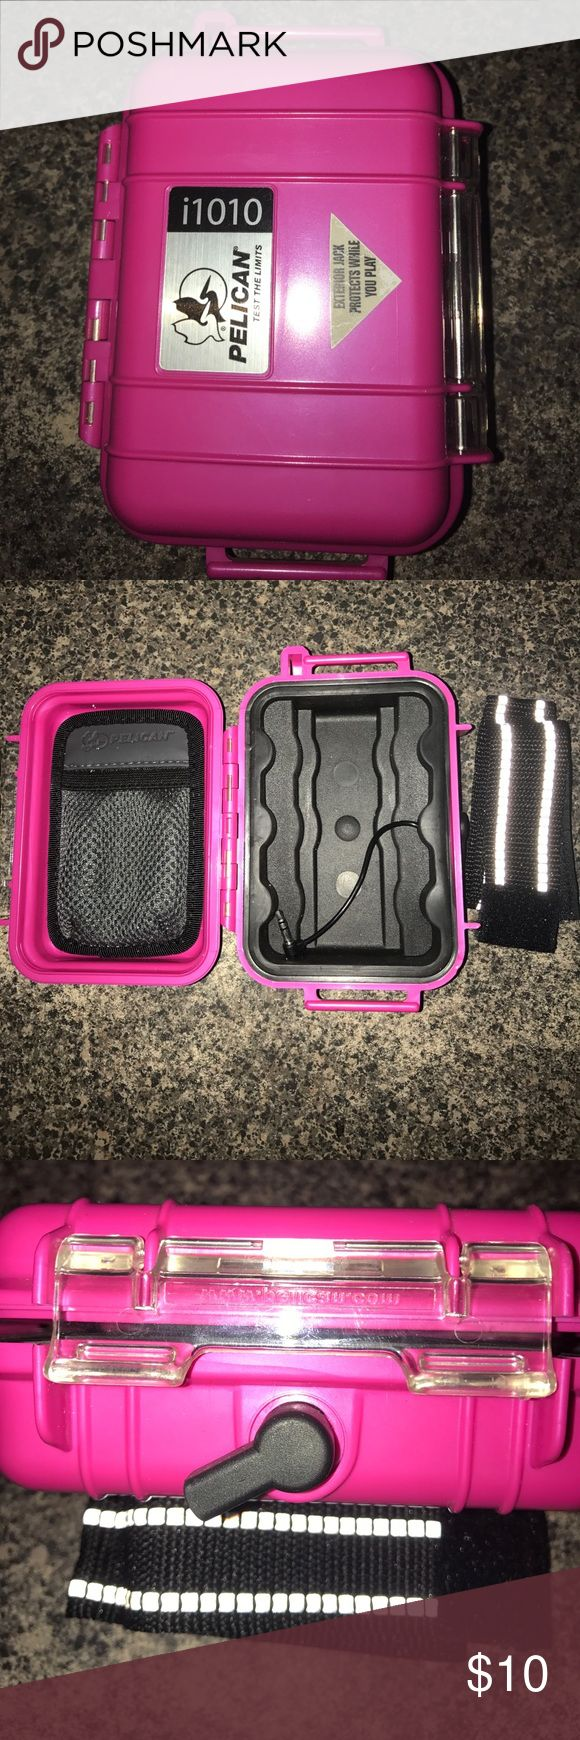 Pink Pelican case Pink Pelican case. 4x5x2. Designed to keep items waterproof while still utilizing headphone jack. Pelican Other